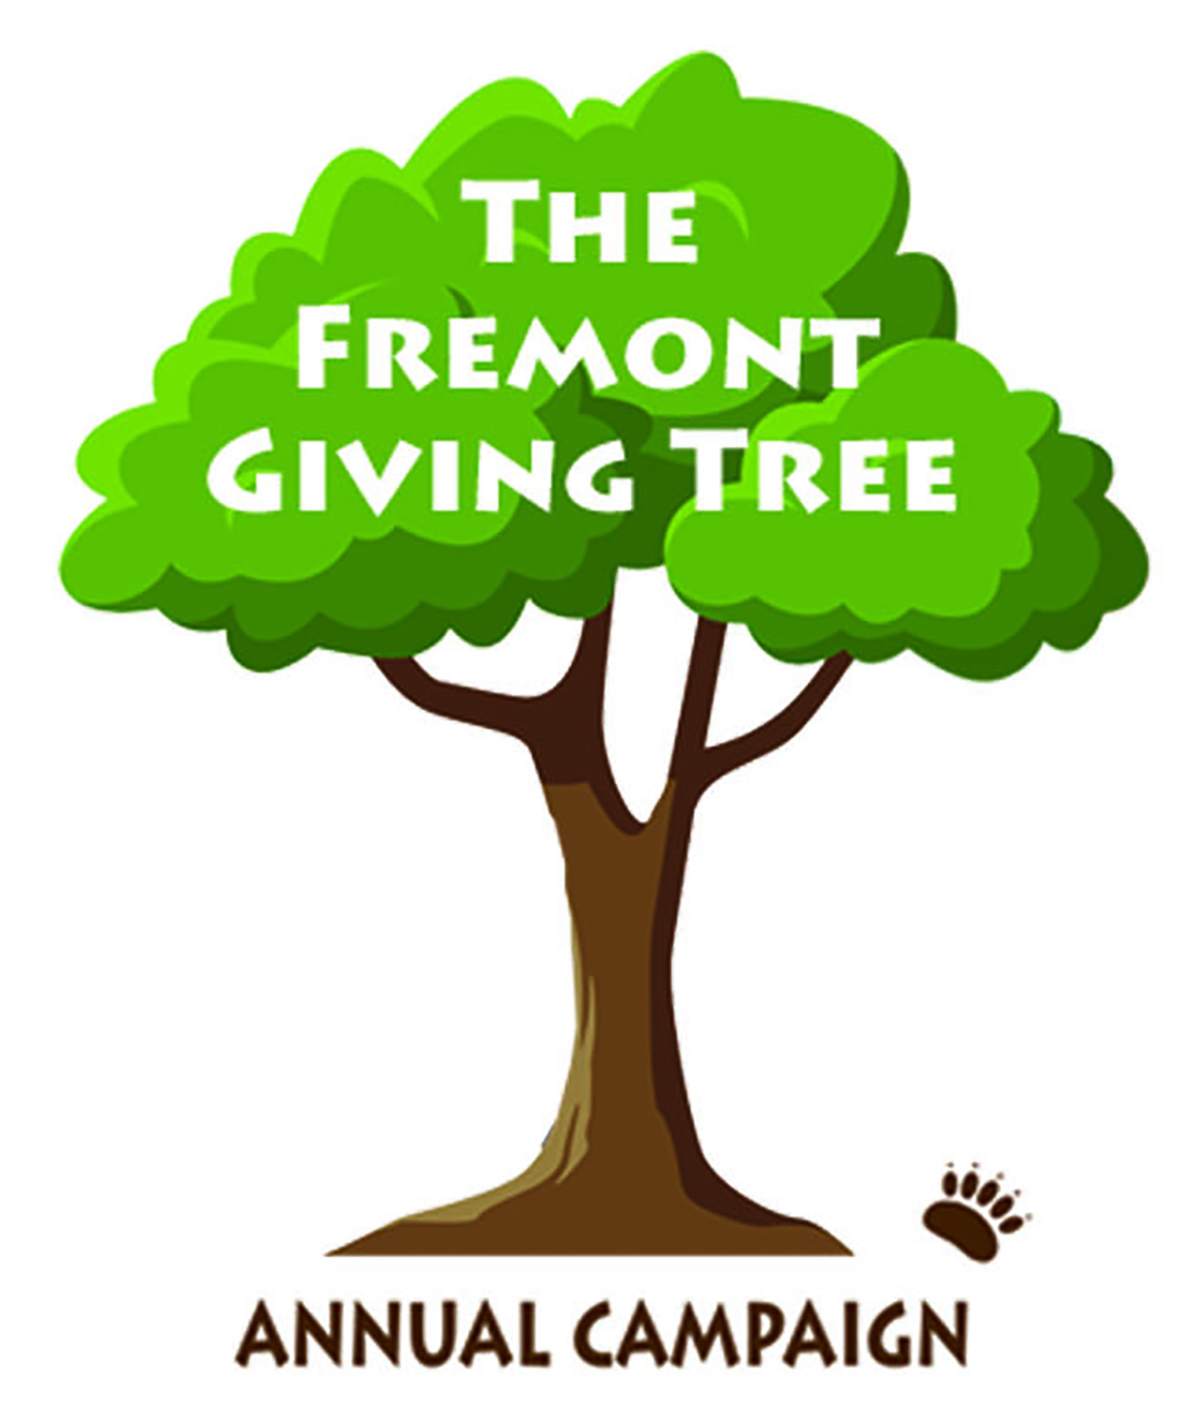 The Fremont Giving Tree